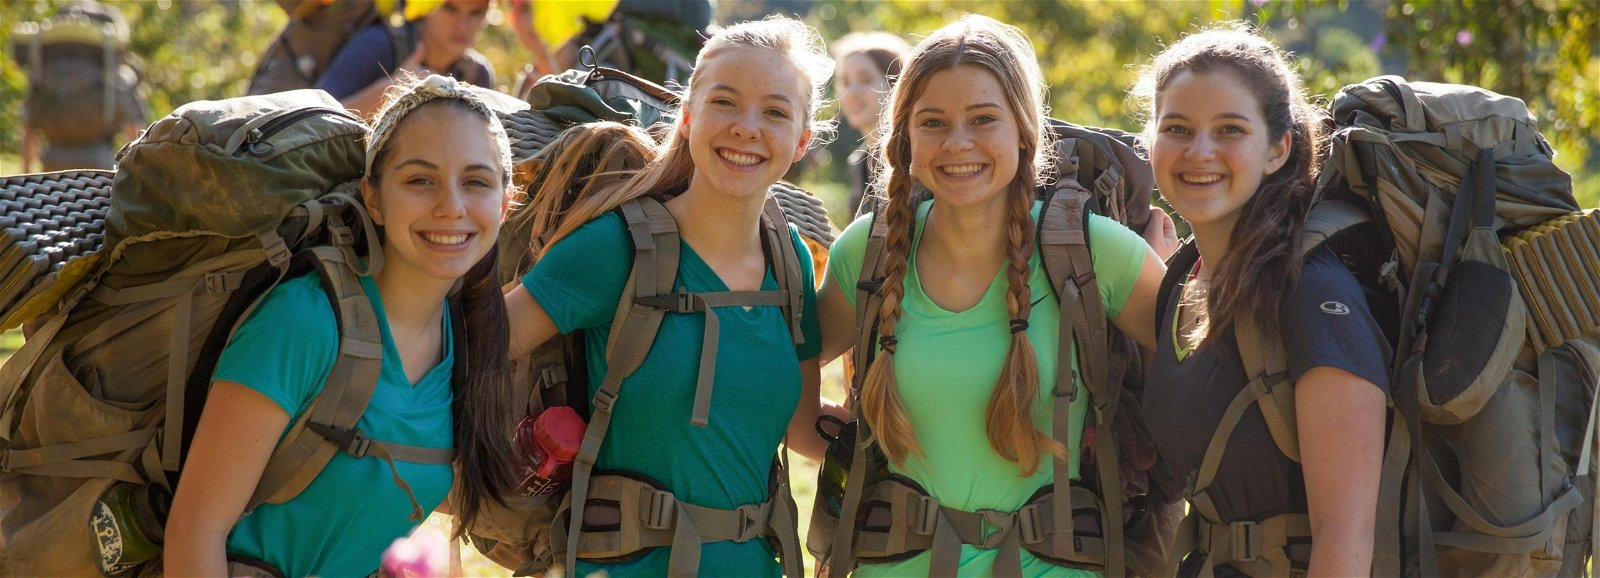 Four girls with backpacks on